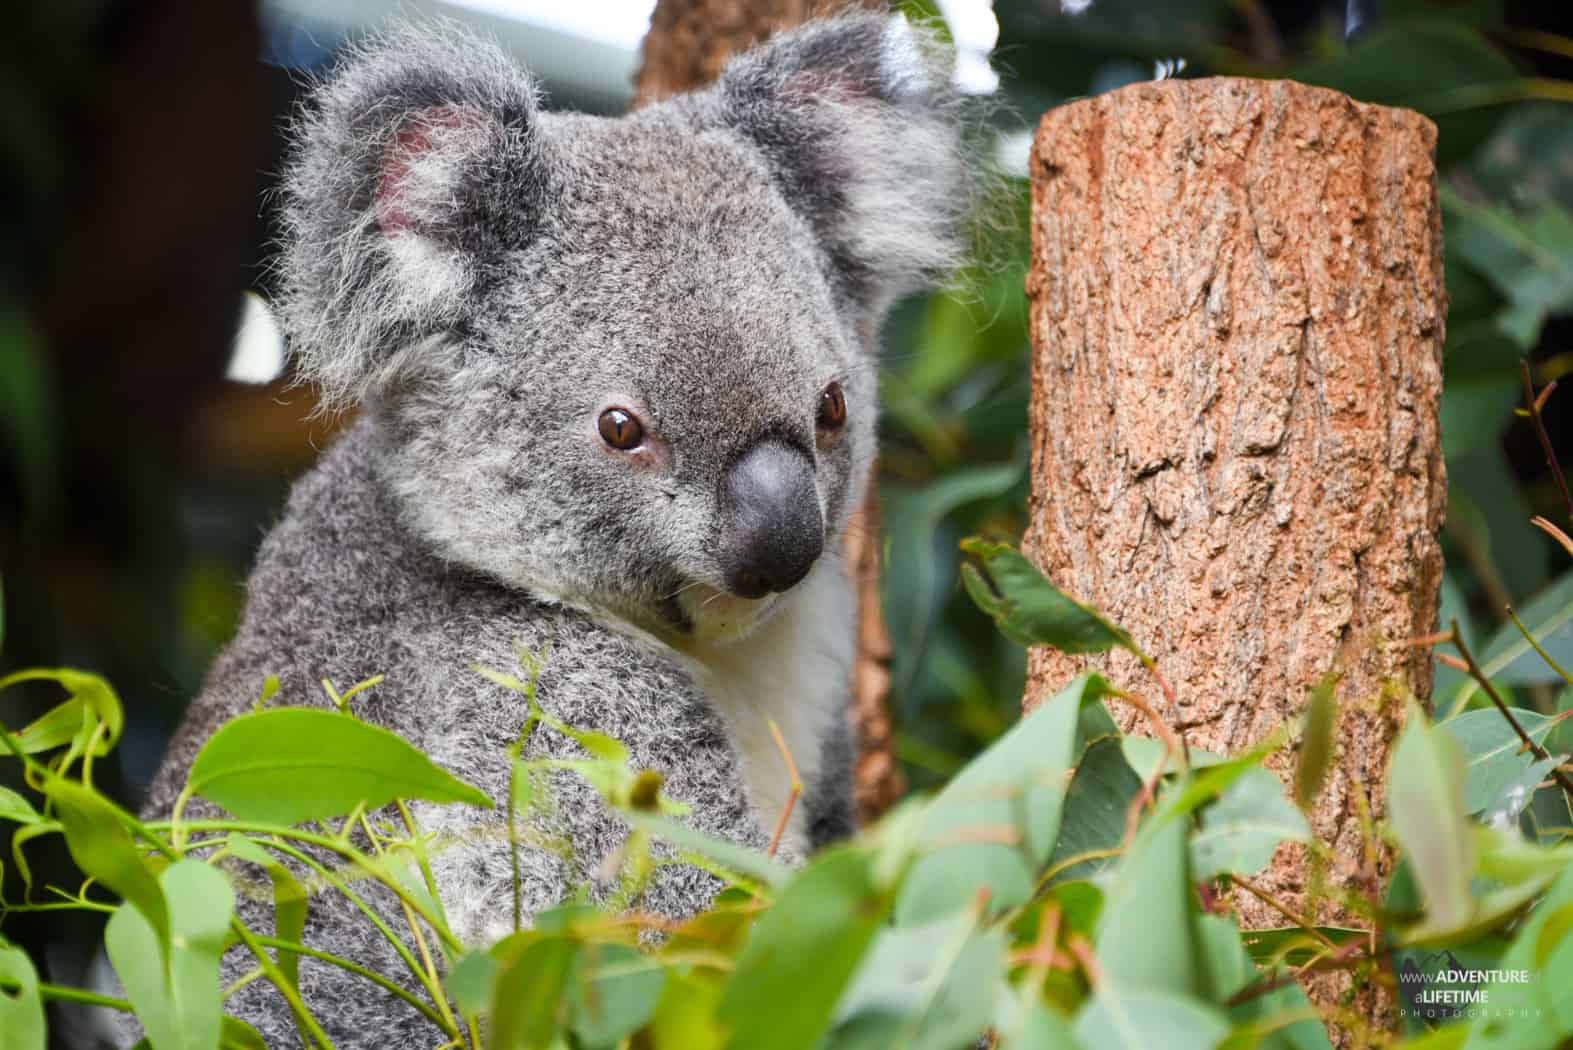 Koala in his tree